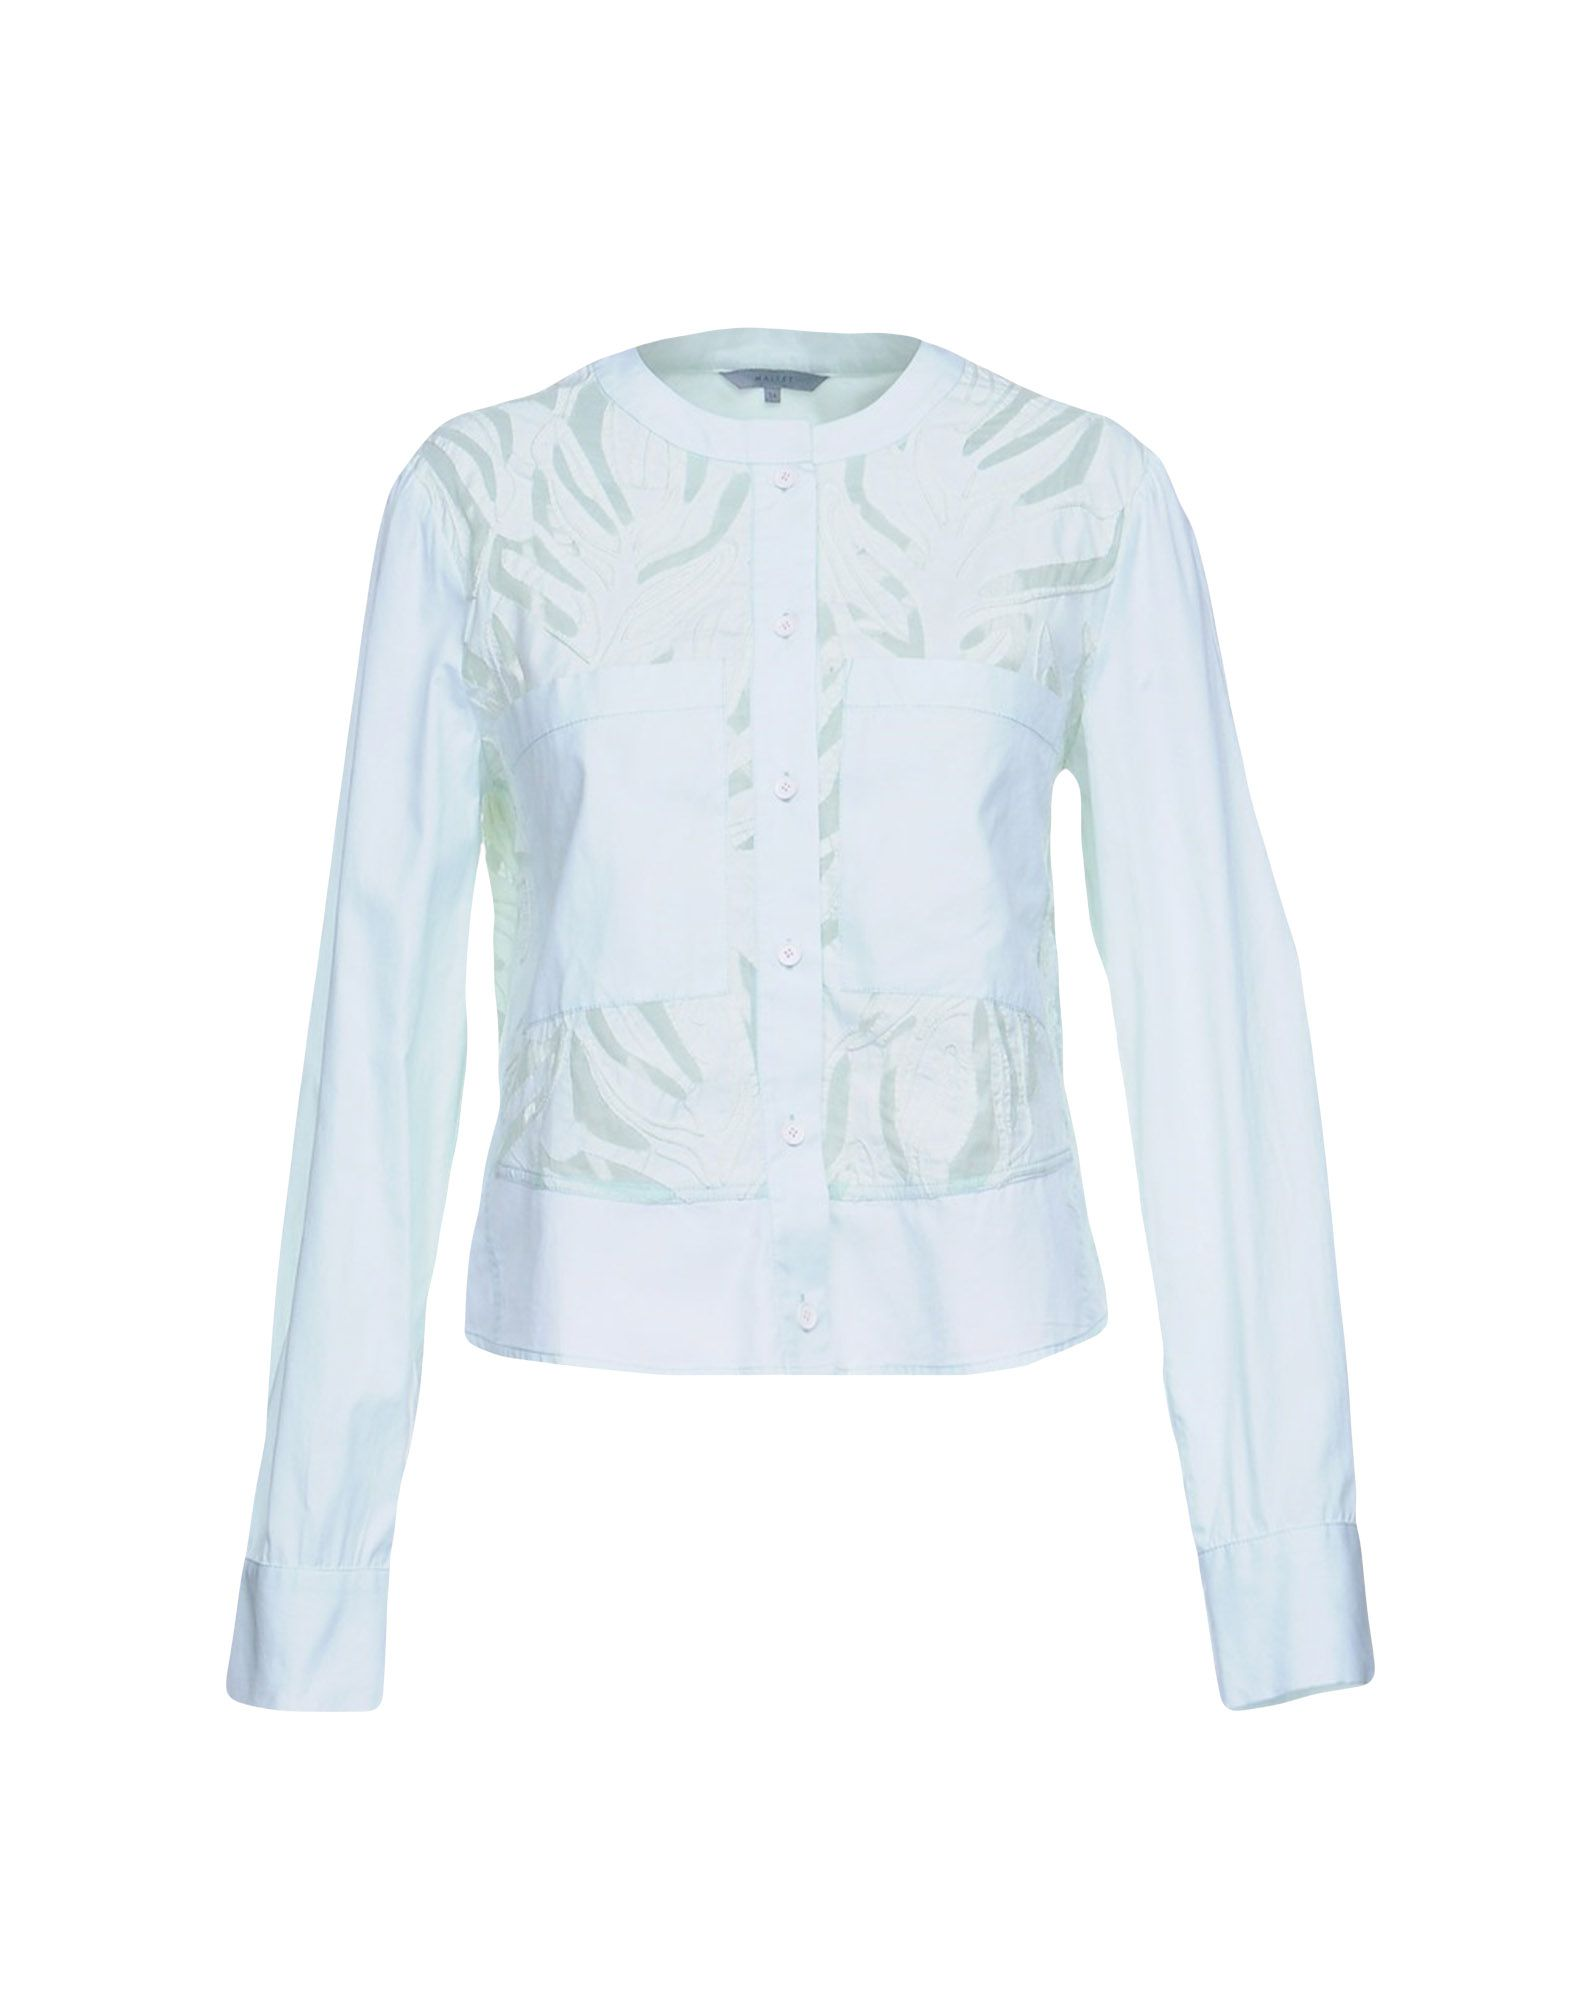 MAIYET Patterned Shirts & Blouses in Light Green